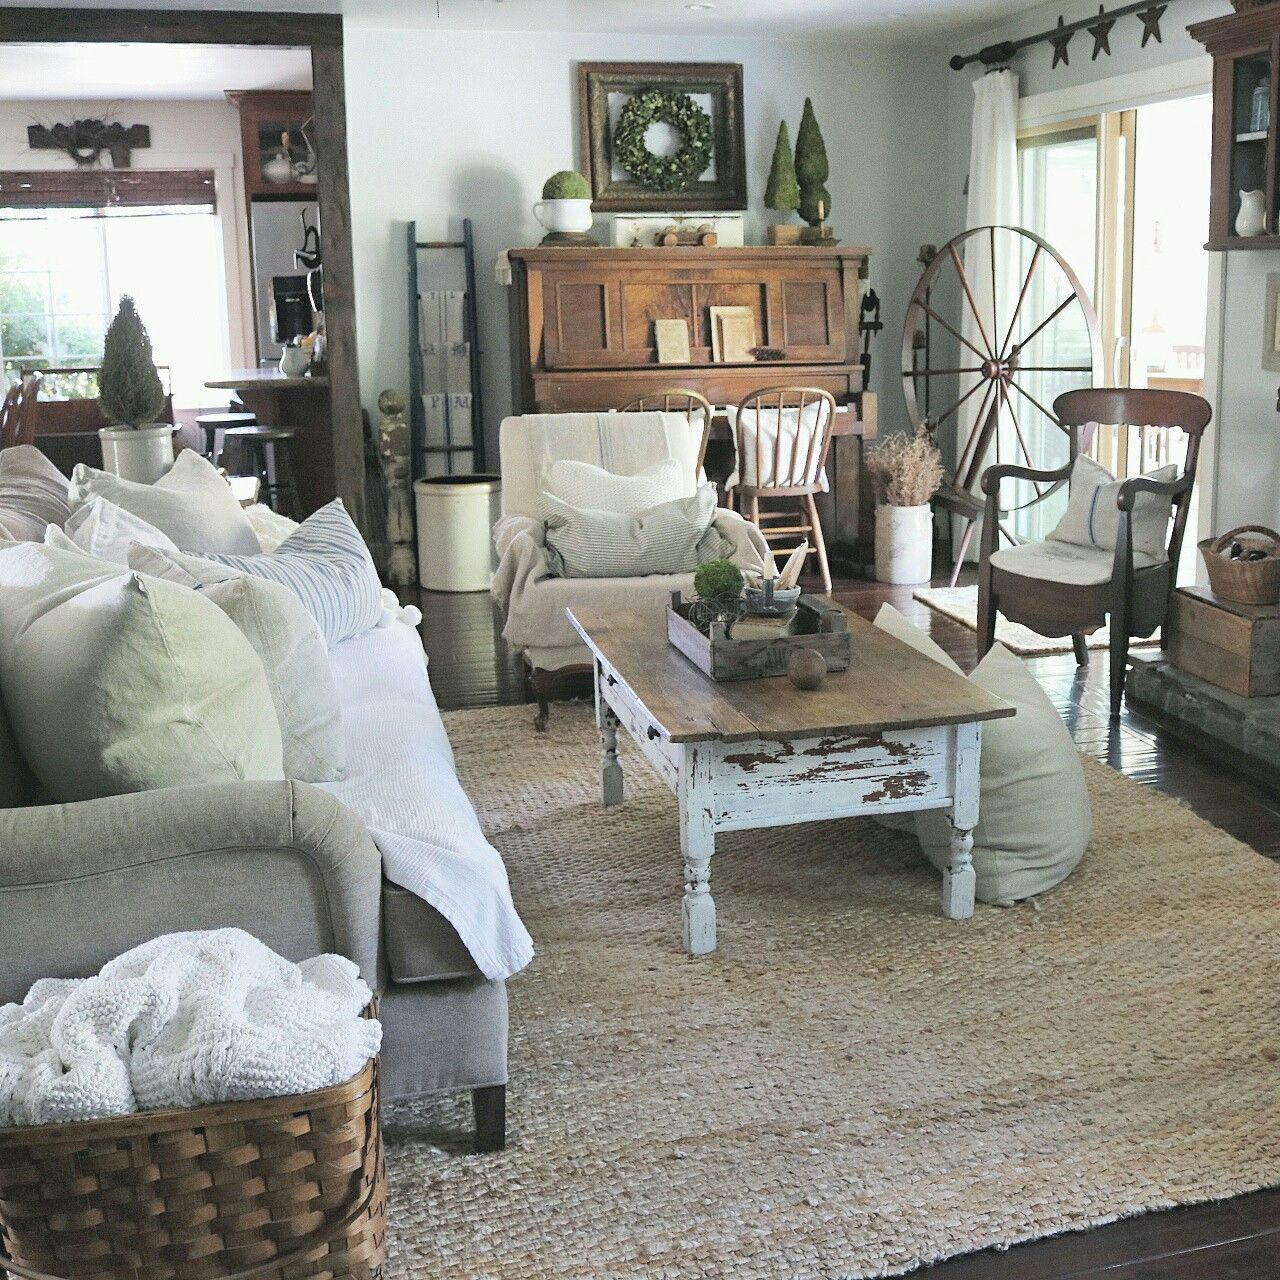 Country Farmhouse Living Room: Farmhouse - Living Room At Home On SweetCreek